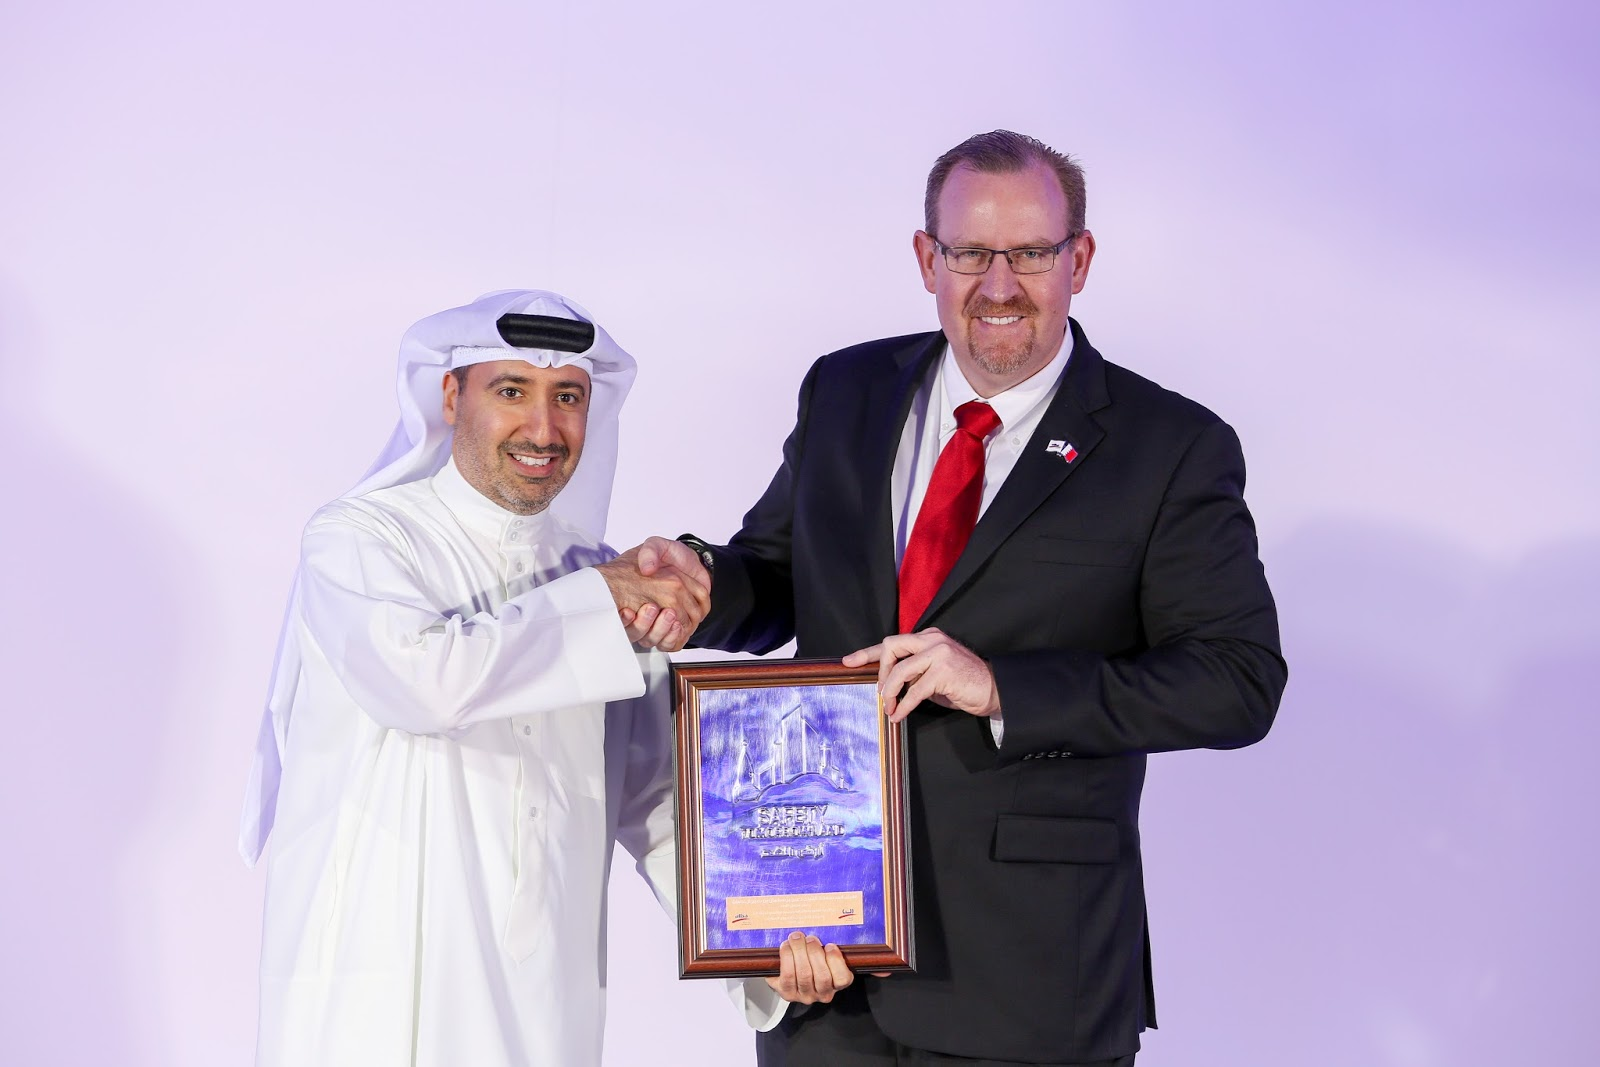 Aluminium Plant Safety: Alba launches Plant-Wide Safety